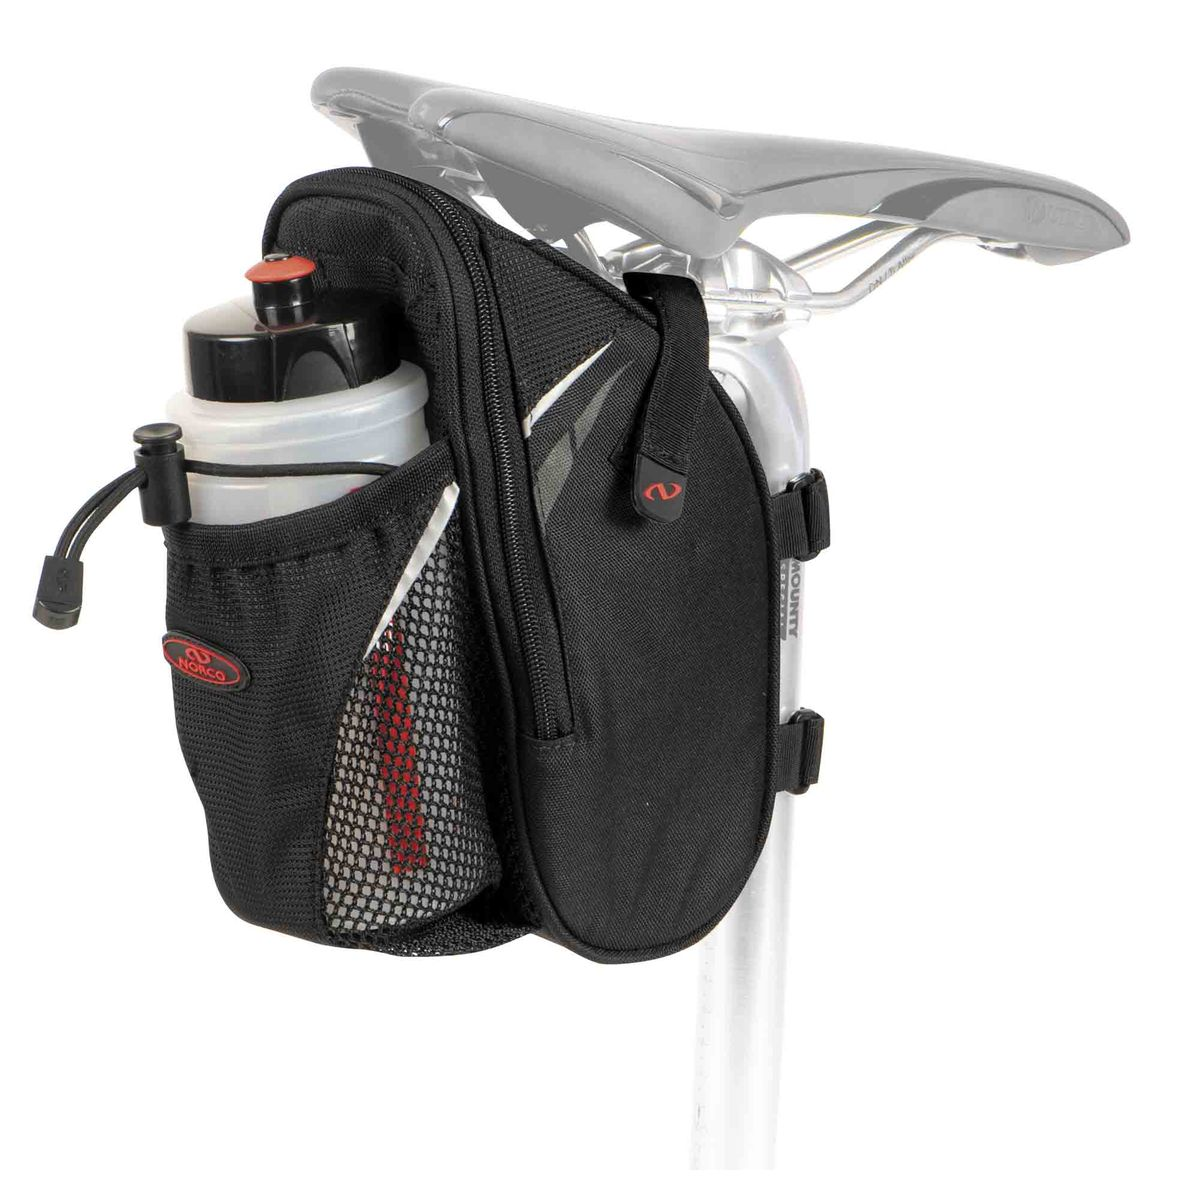 NORCO UTAH Plus saddle bag | Saddle bags